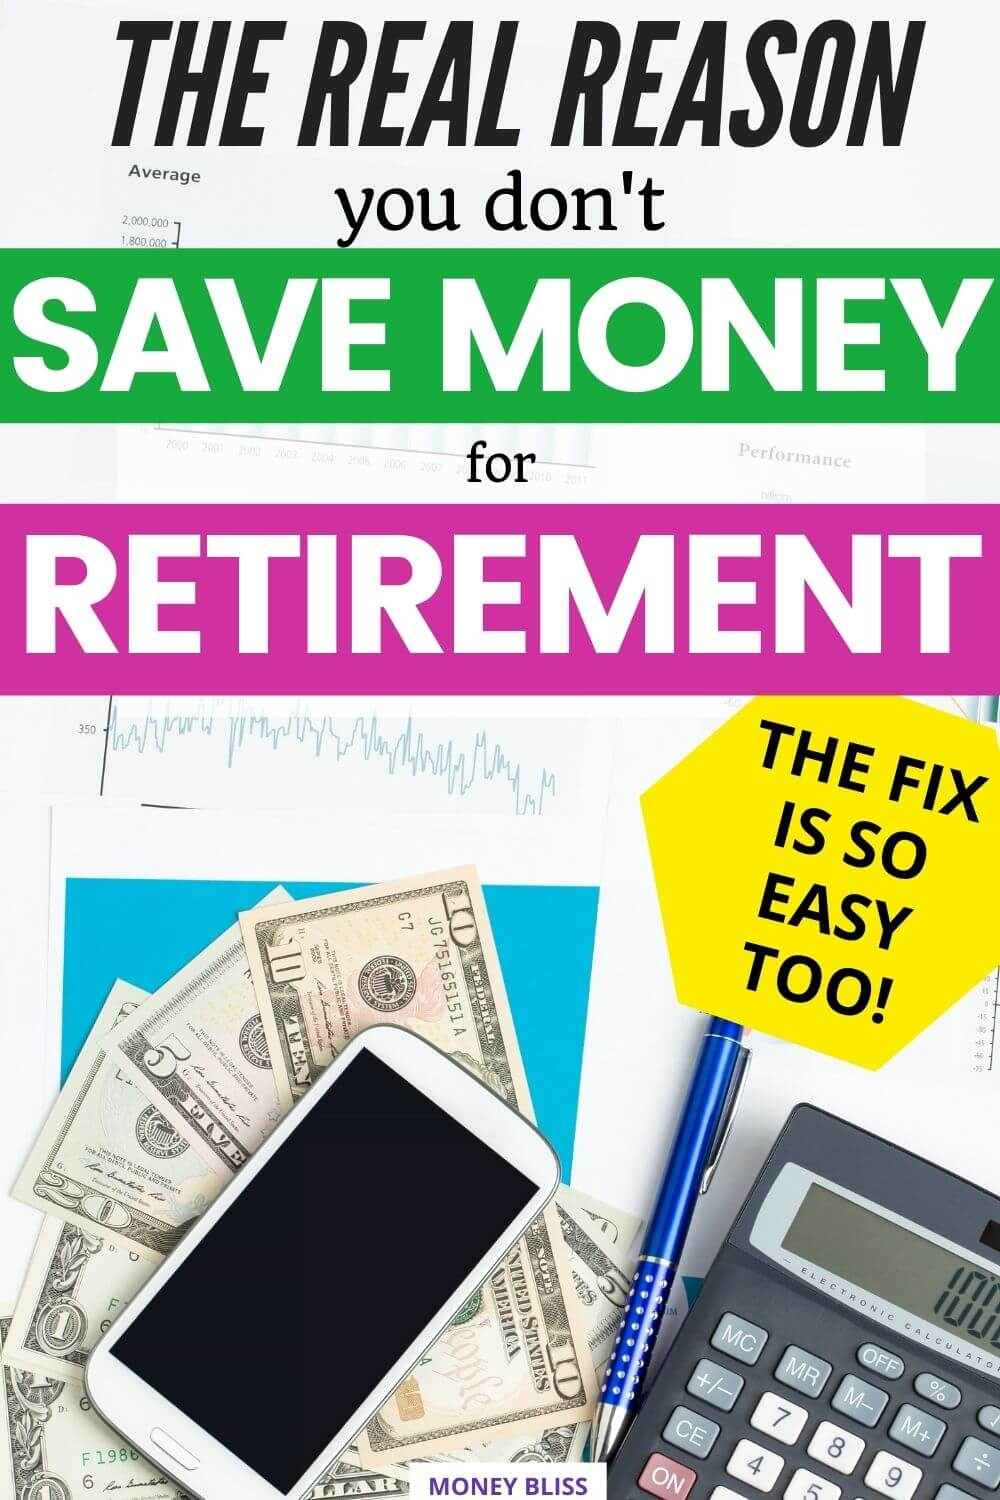 This is a must read from Money Bliss. Learn the real reason why you don't save for retirement and simple way to overcome it. Things have been complicated with the 4 percent rule, then the 3 percent rule and now the 5% rule of retirement. Find out how much do I need to retire? Plus get tips on the besy ways for saving money for retirement. Click here to learn exactly how much money to save for retirement.